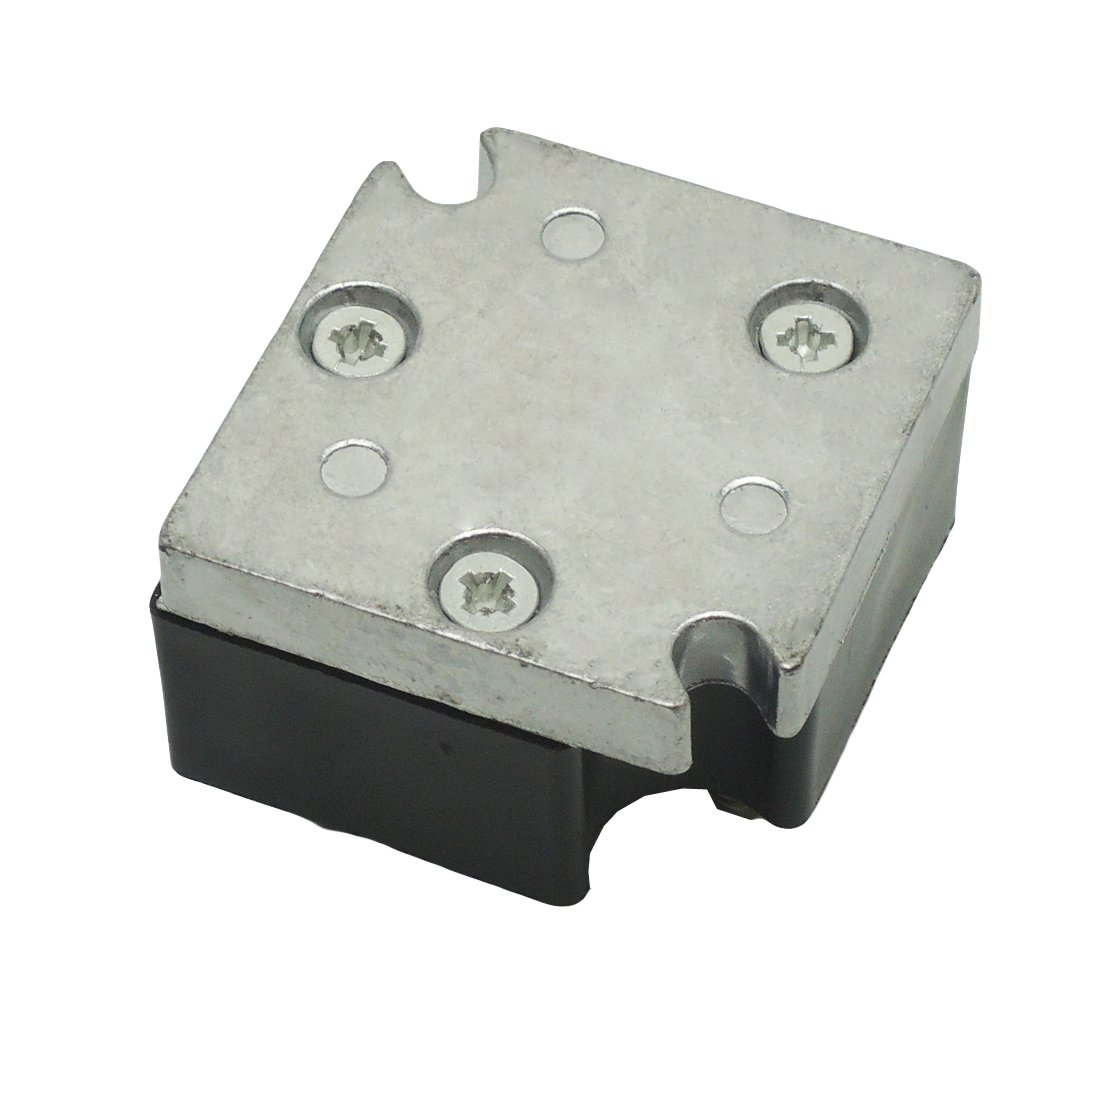 18-5707 62351A1 Regulator Rectifier for Mercury Marine Outboard Application 816770T 154-6770